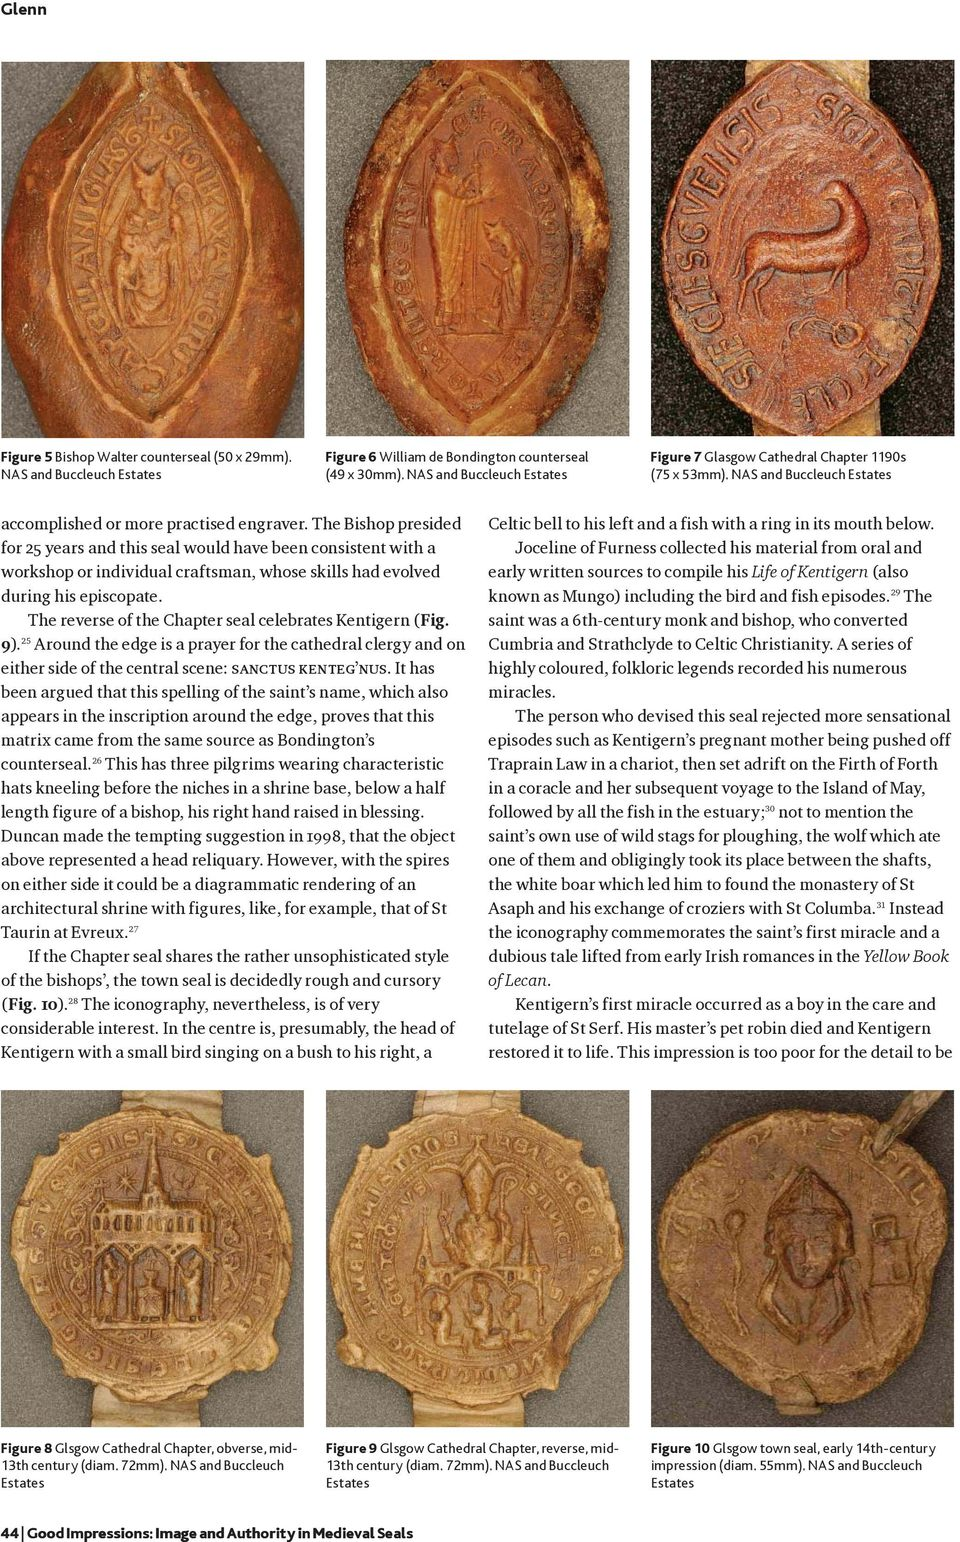 The Bishop presided for 25 years and this seal would have been consistent with a workshop or individual craftsman, whose skills had evolved during his episcopate.